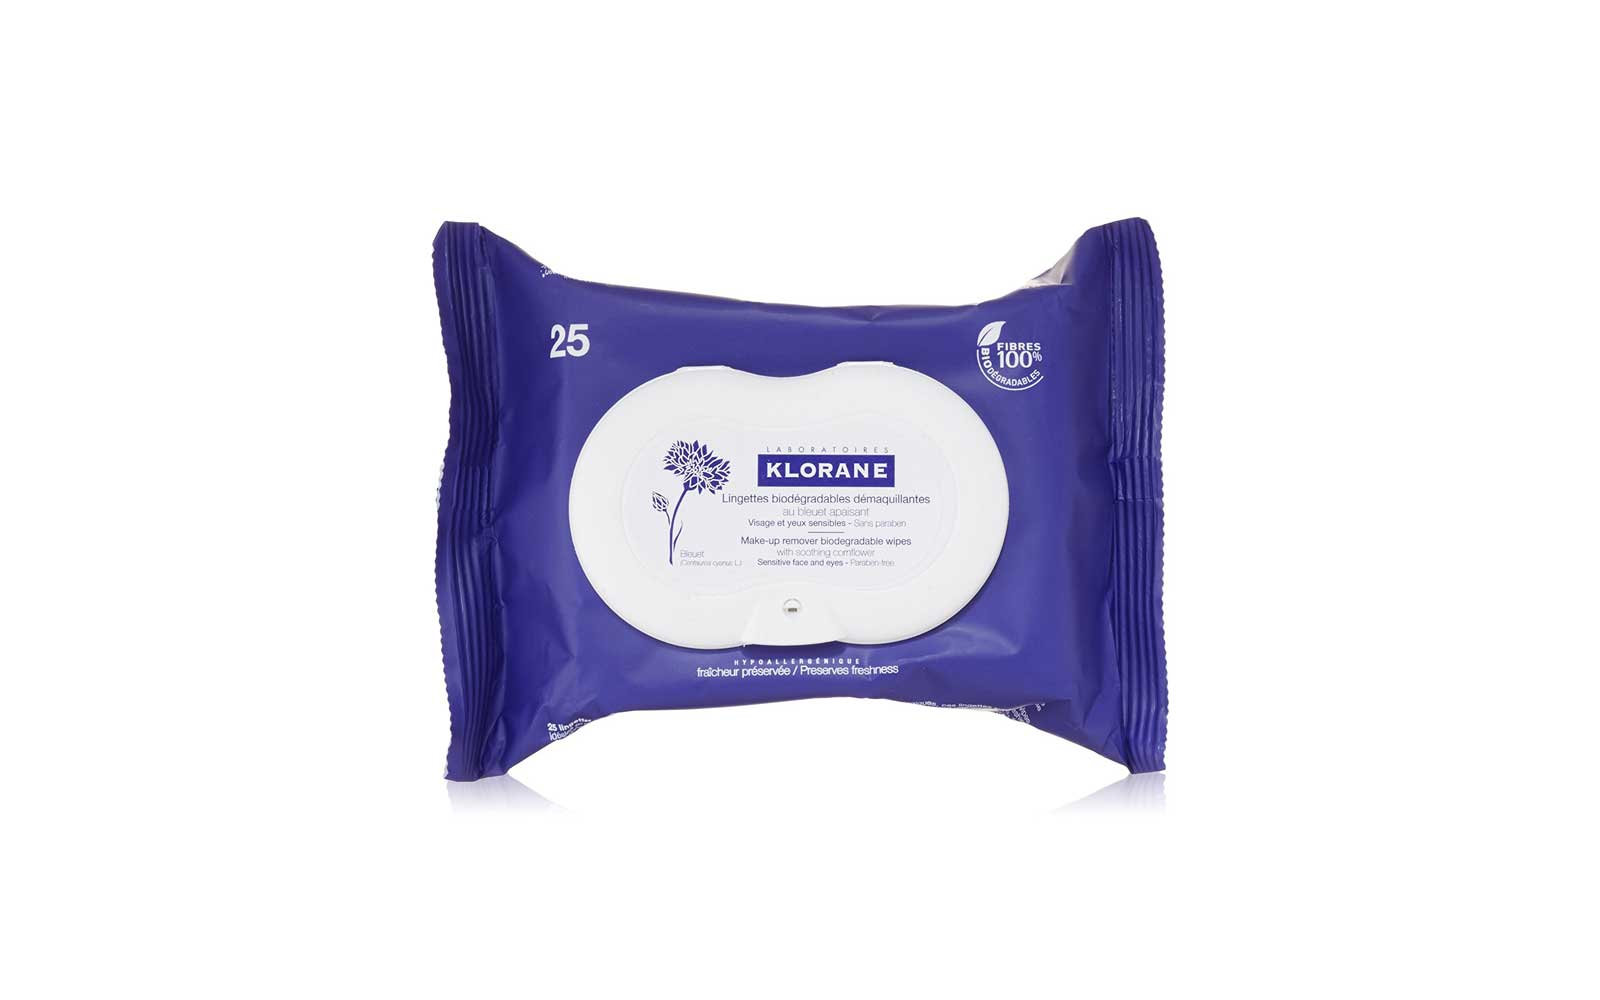 Klorane Make-Up Remover Biodegradable Wipes